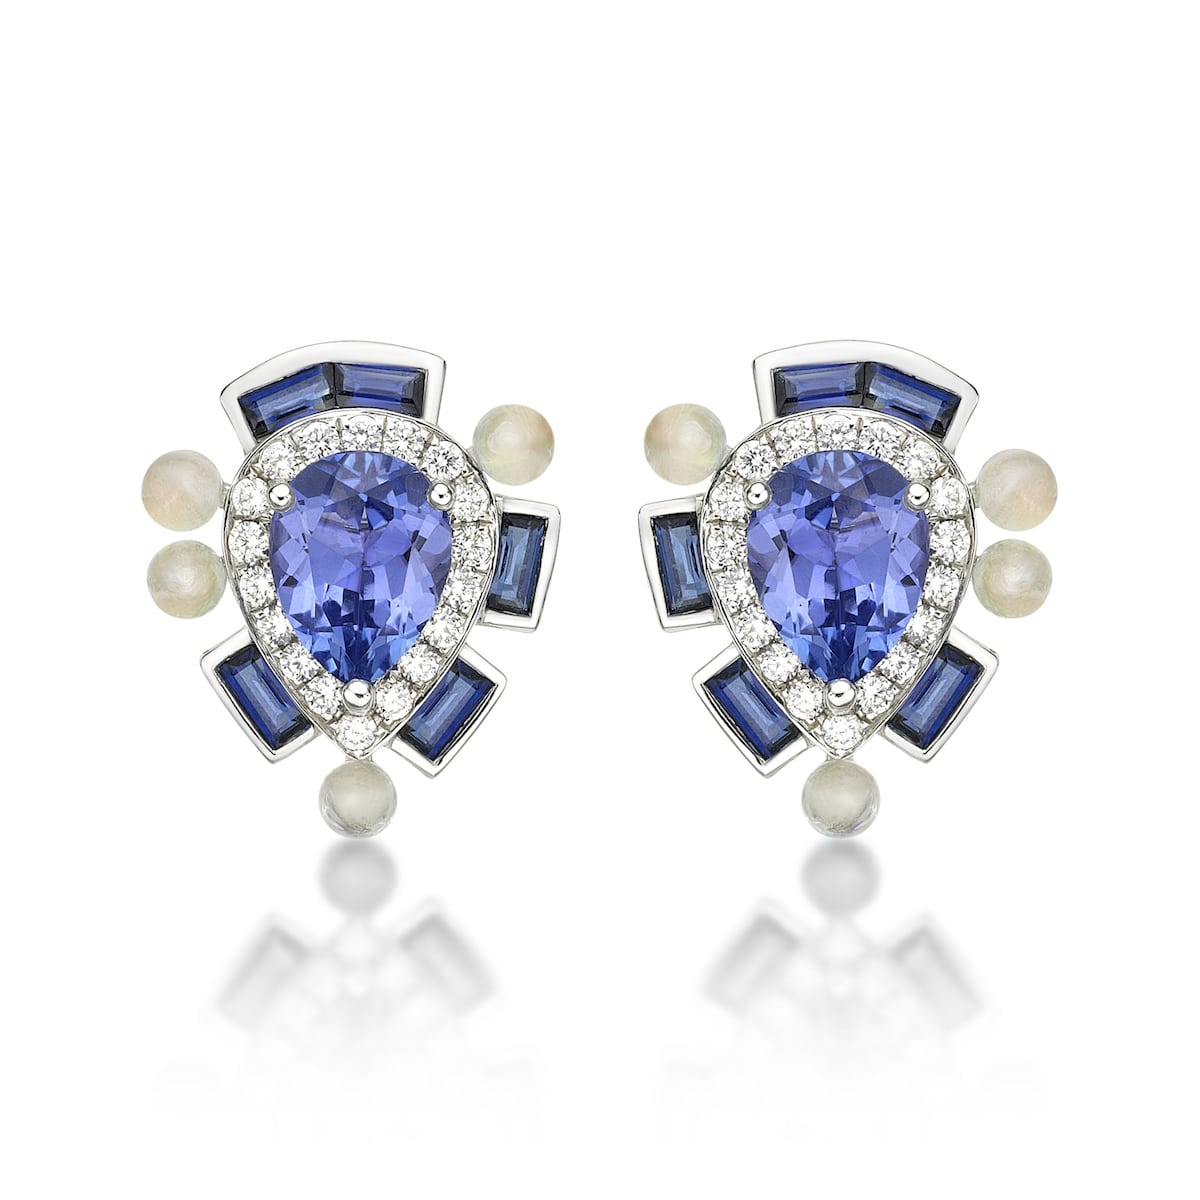 Wisteria-Blue-Studs-18ct-white-gold-white-diamonds-Rainbow-moonstone-Blue-sapphire-and-Tanzanite-Sarah-Ho